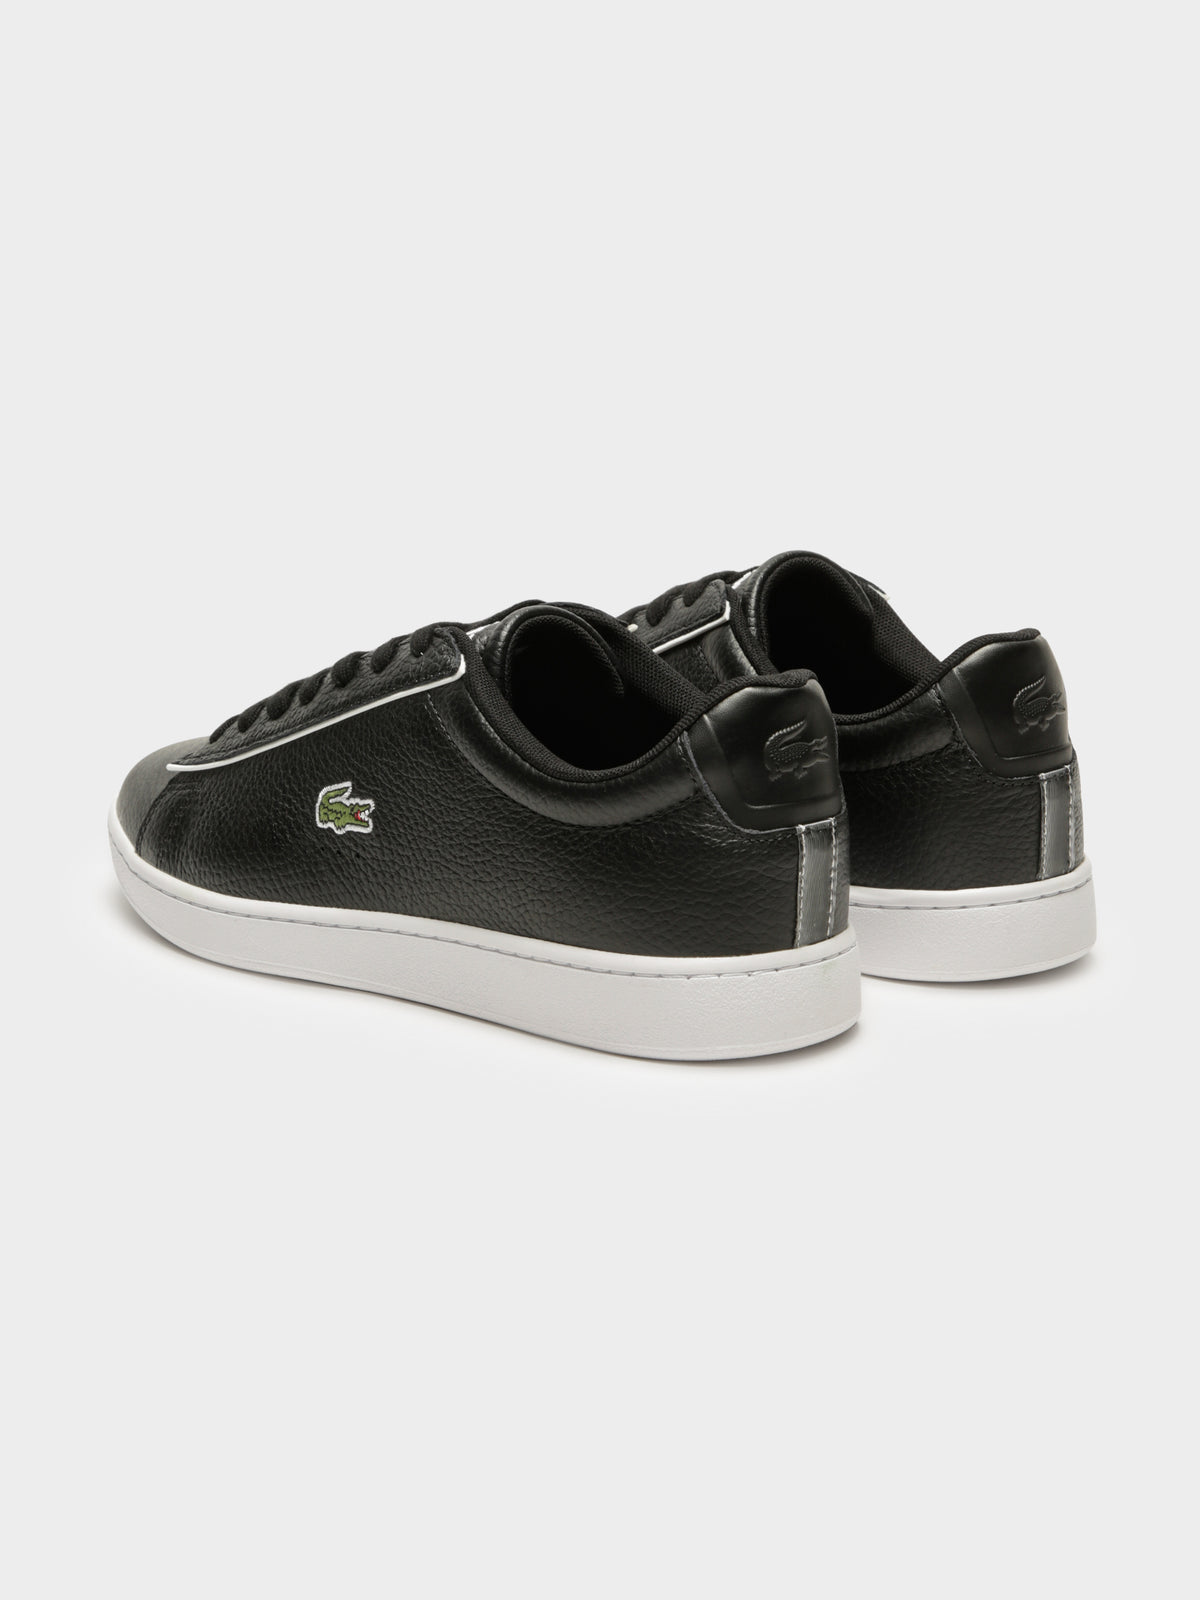 Mens Carnaby Evo 120 2 SMA Sneakers in Black & White